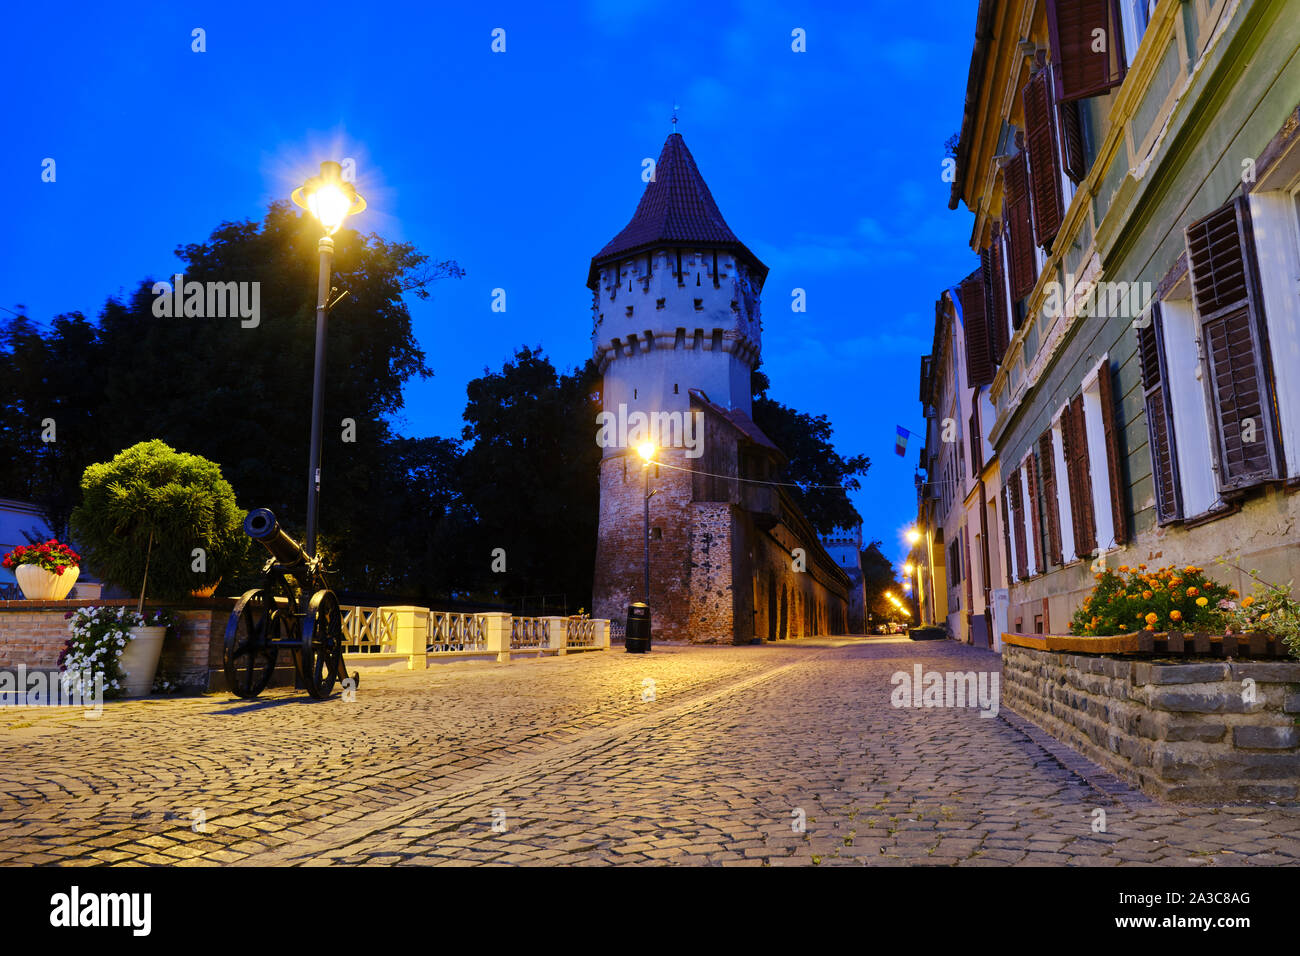 Cetatii street and Carpenters Tower (Turnul Dulgherilor), Sibiu, at blue hour, before sunrise. This brick-&-stone tower was constructed in the 14th ce Stock Photo